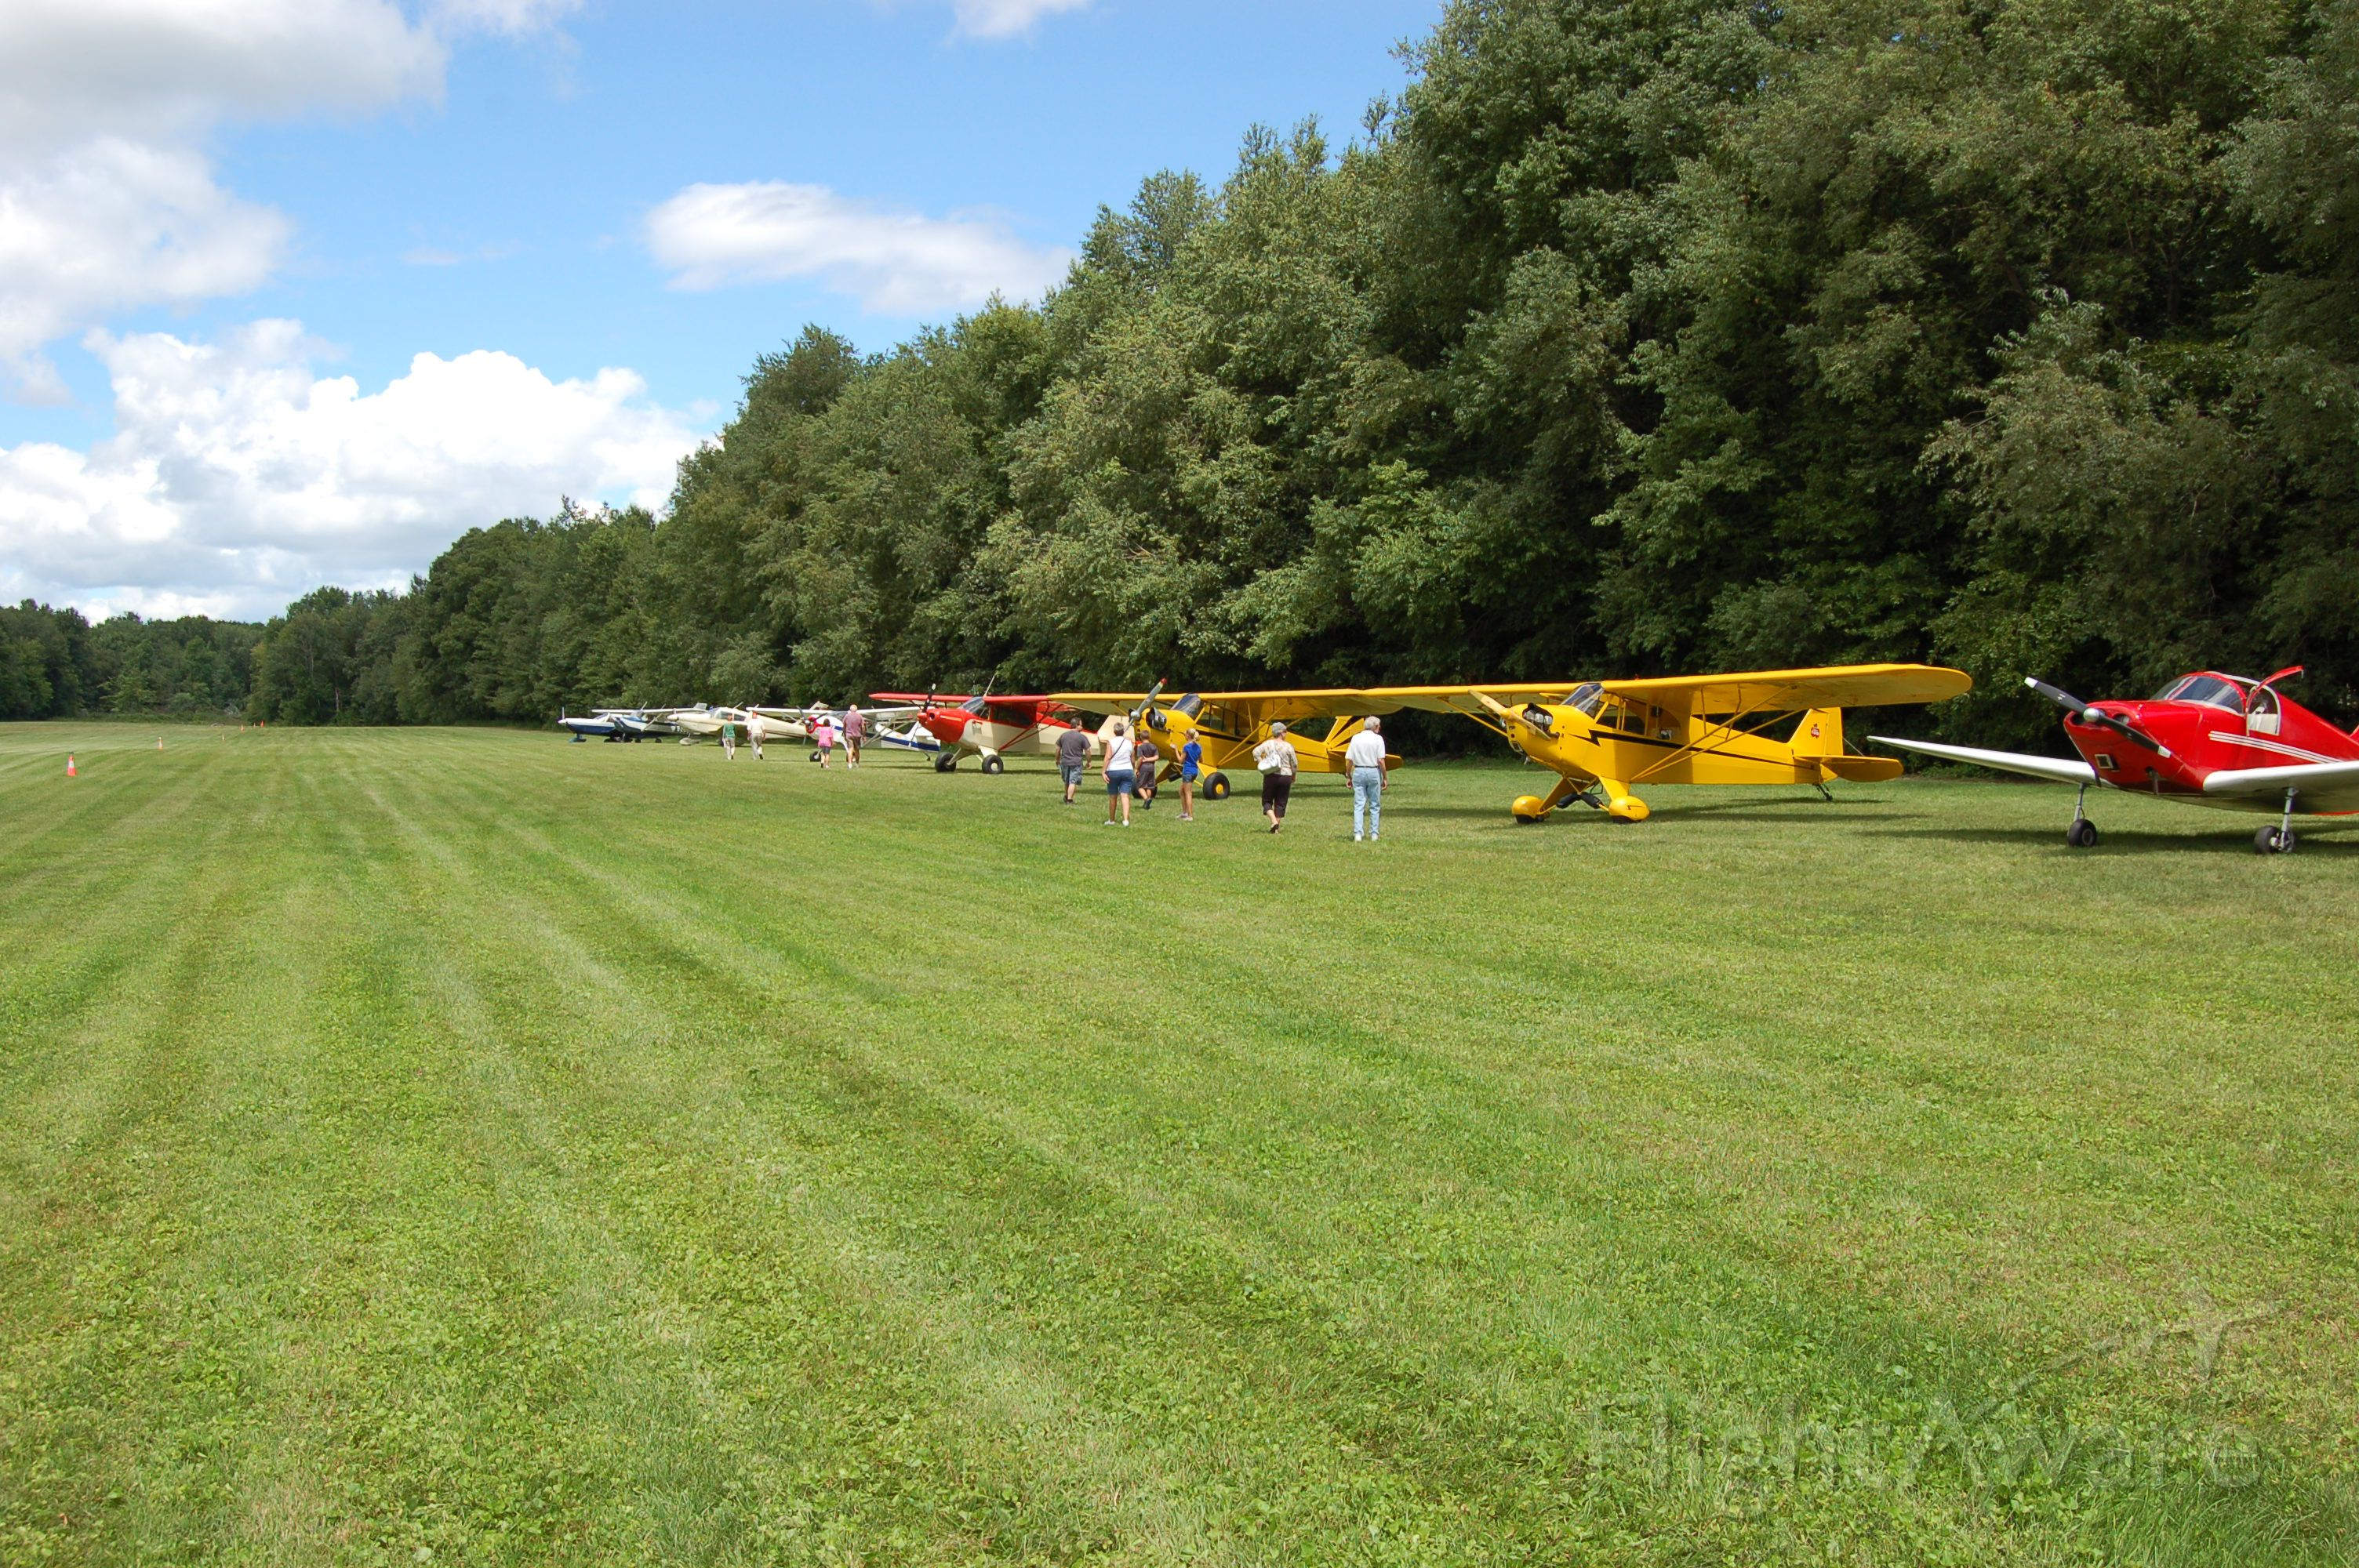 — — - Parking was almost full @ Wings & Wheels Sloas Airfield OH 08/13